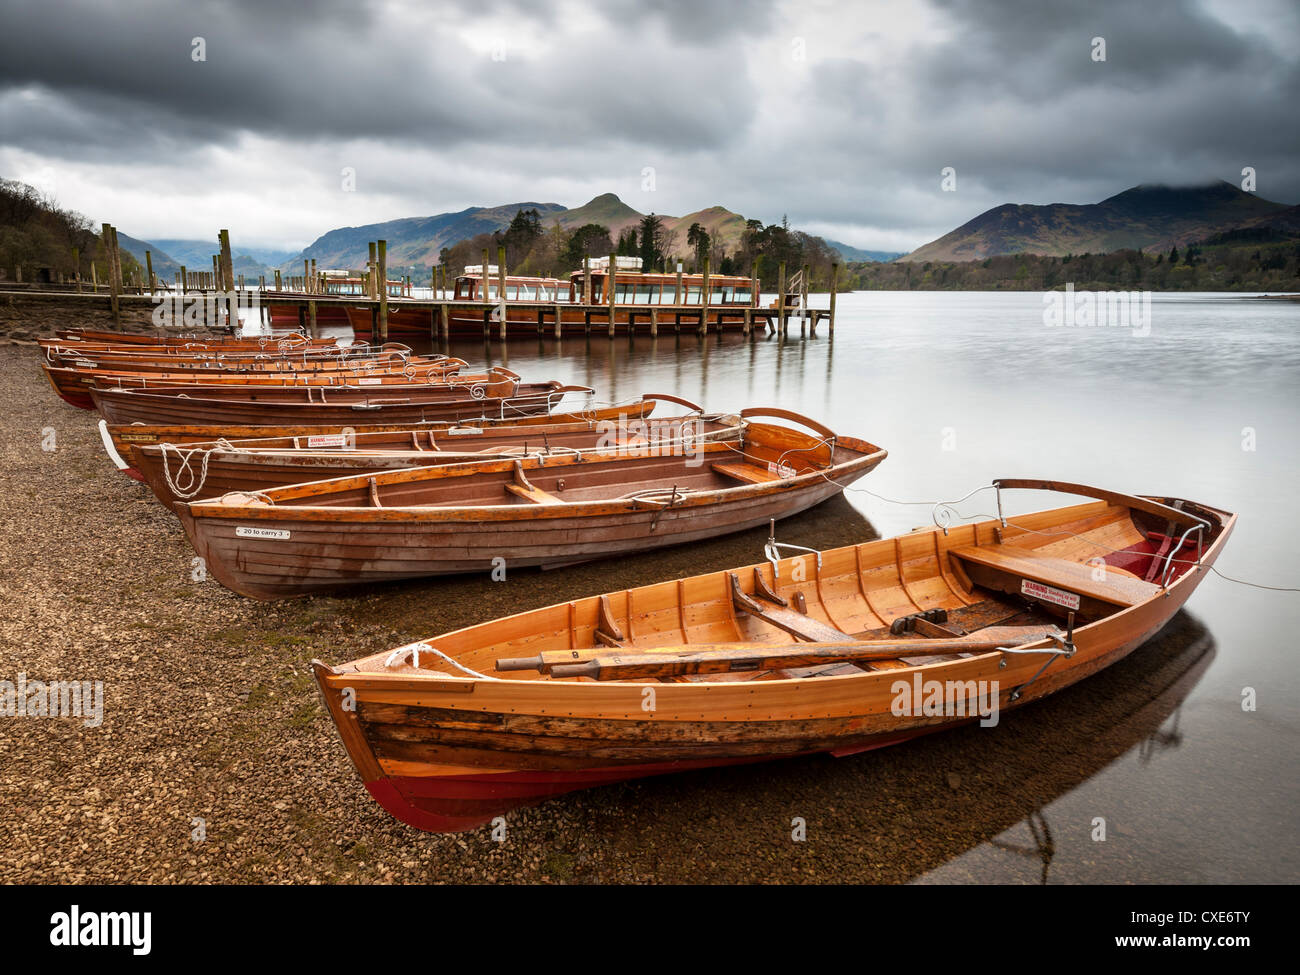 Lancement de Keswick Castlerigg, bateaux, Parc National de Lake District, Cumbria, Angleterre Photo Stock